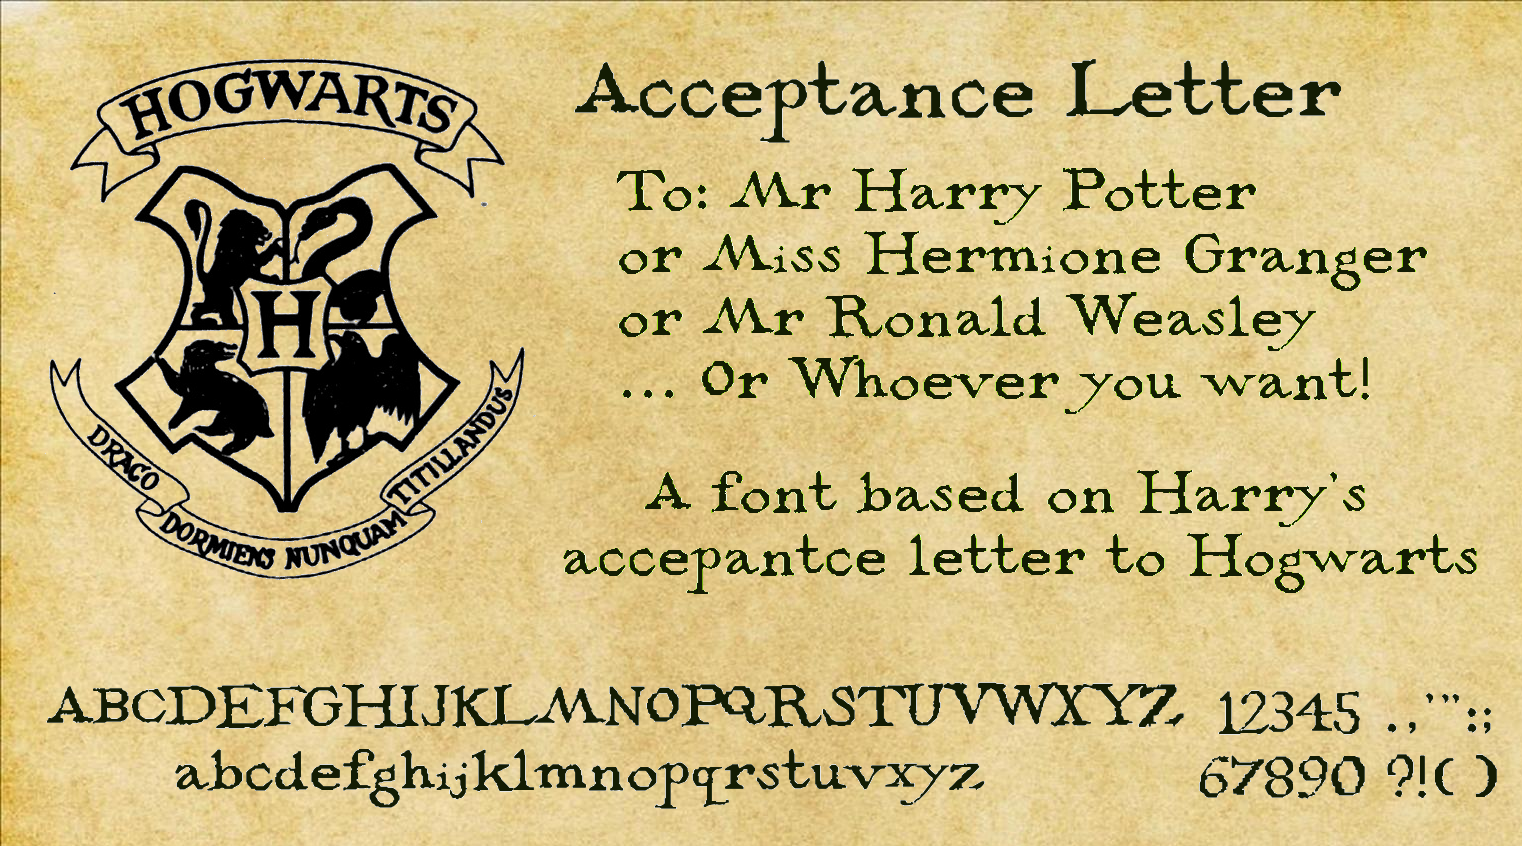 Acceptance letter by decat on deviantart acceptance letter by decat acceptance letter by decat spiritdancerdesigns Choice Image